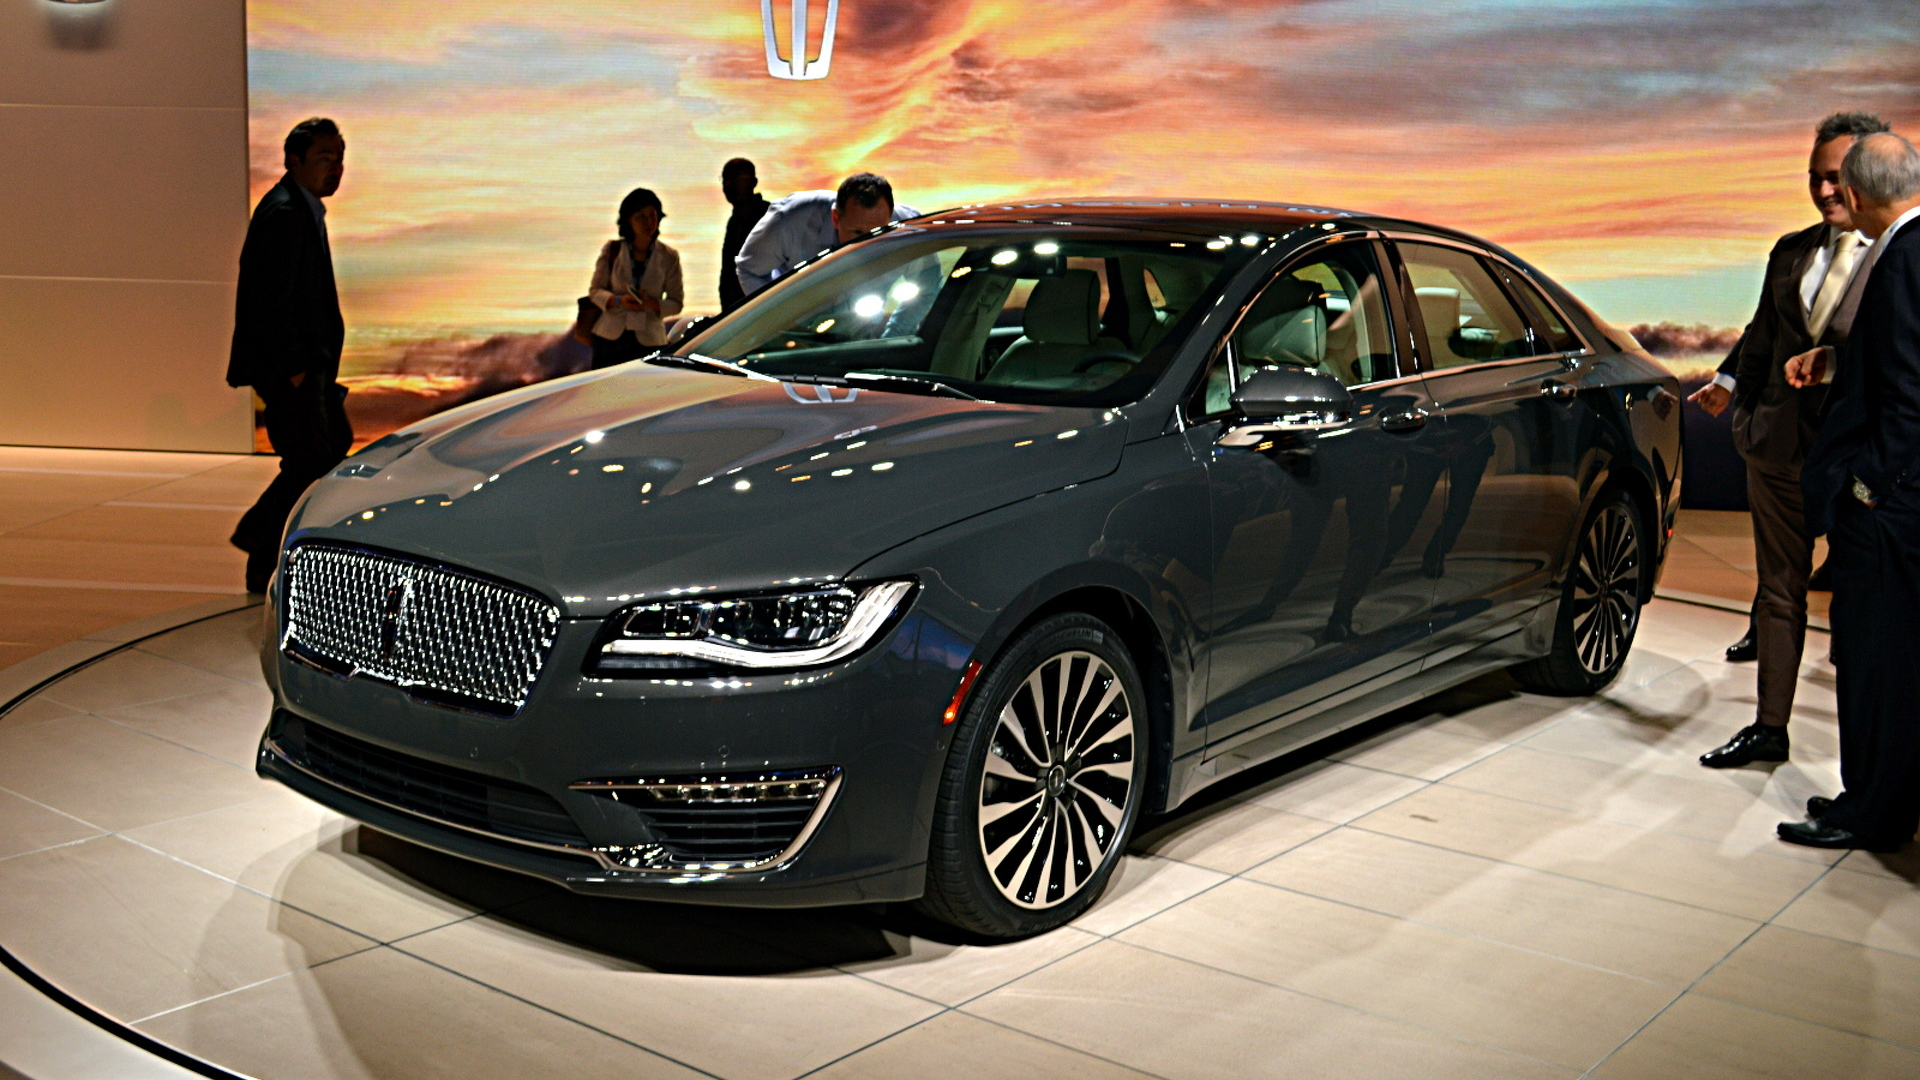 2017 Lincoln Mkz Facelift Unveiled With